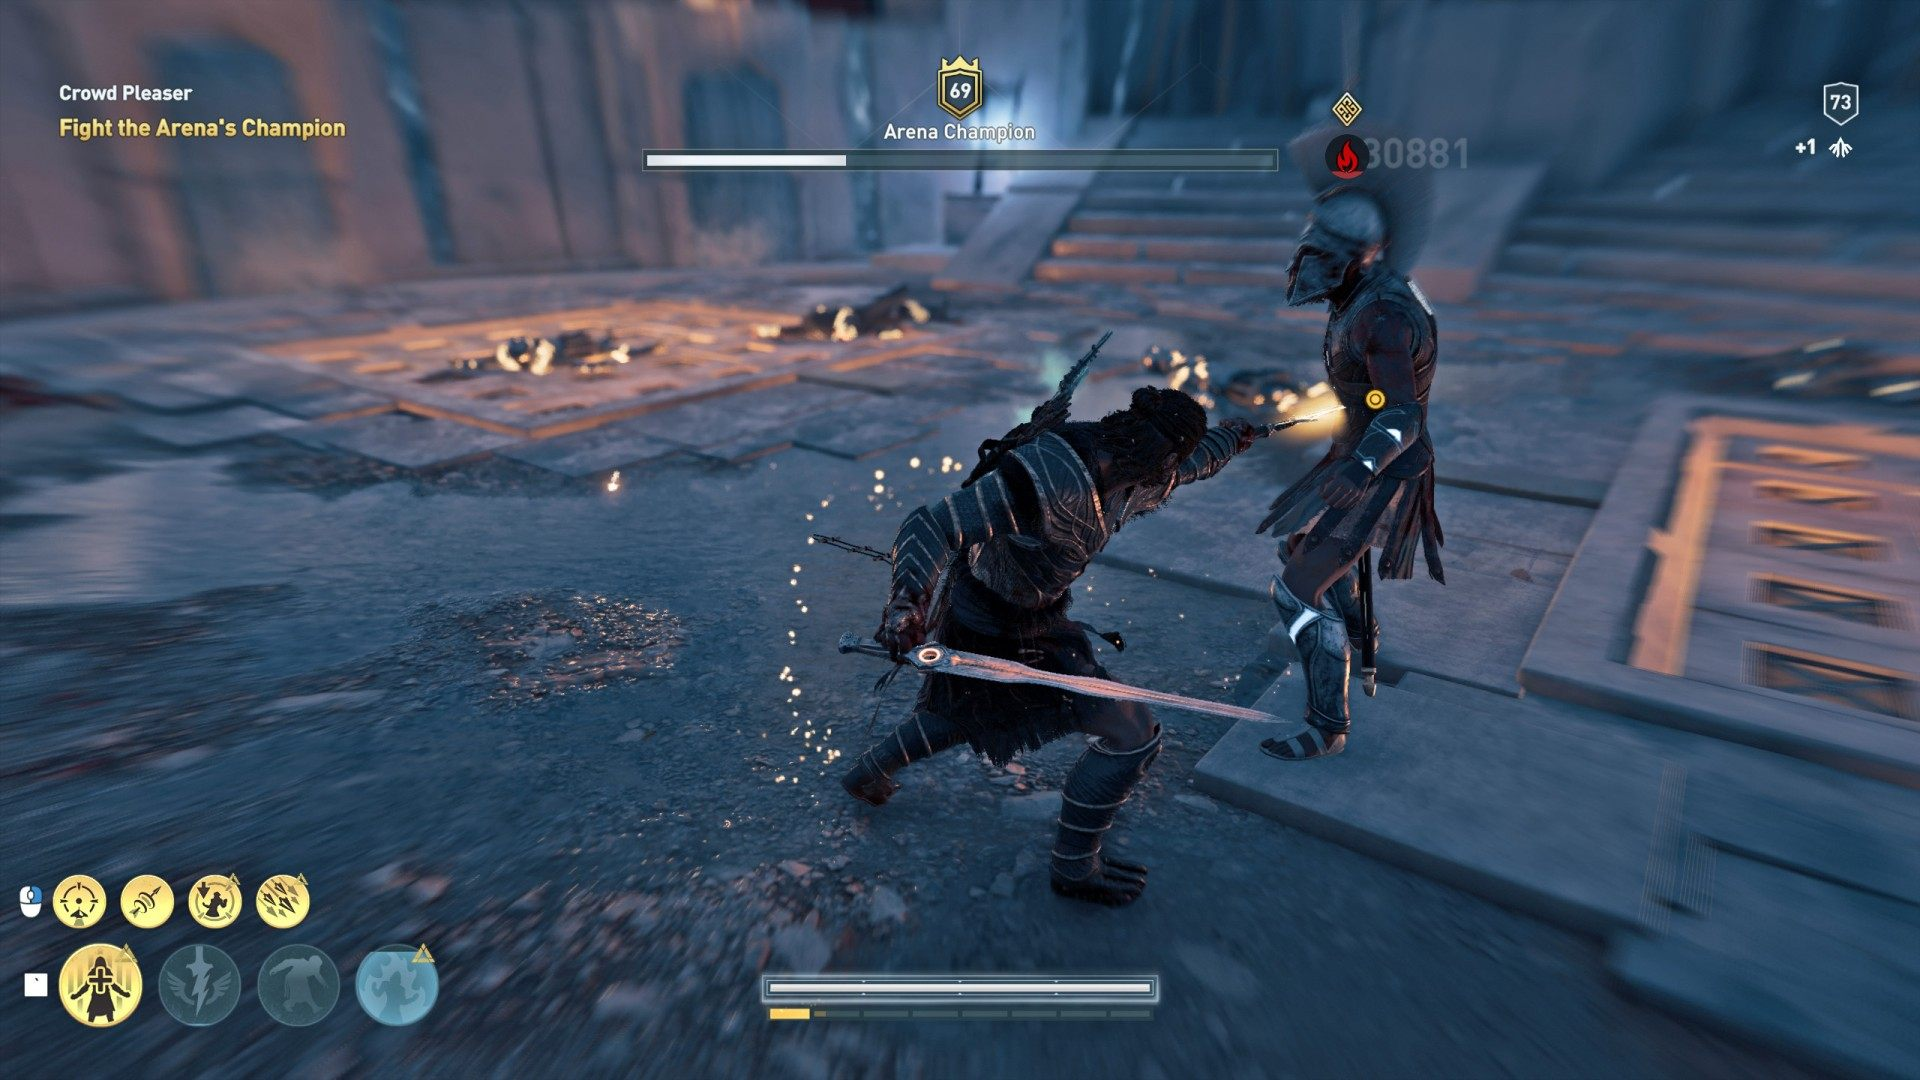 Crowd Pleaser, Assassin's Creed Odyssey Quest